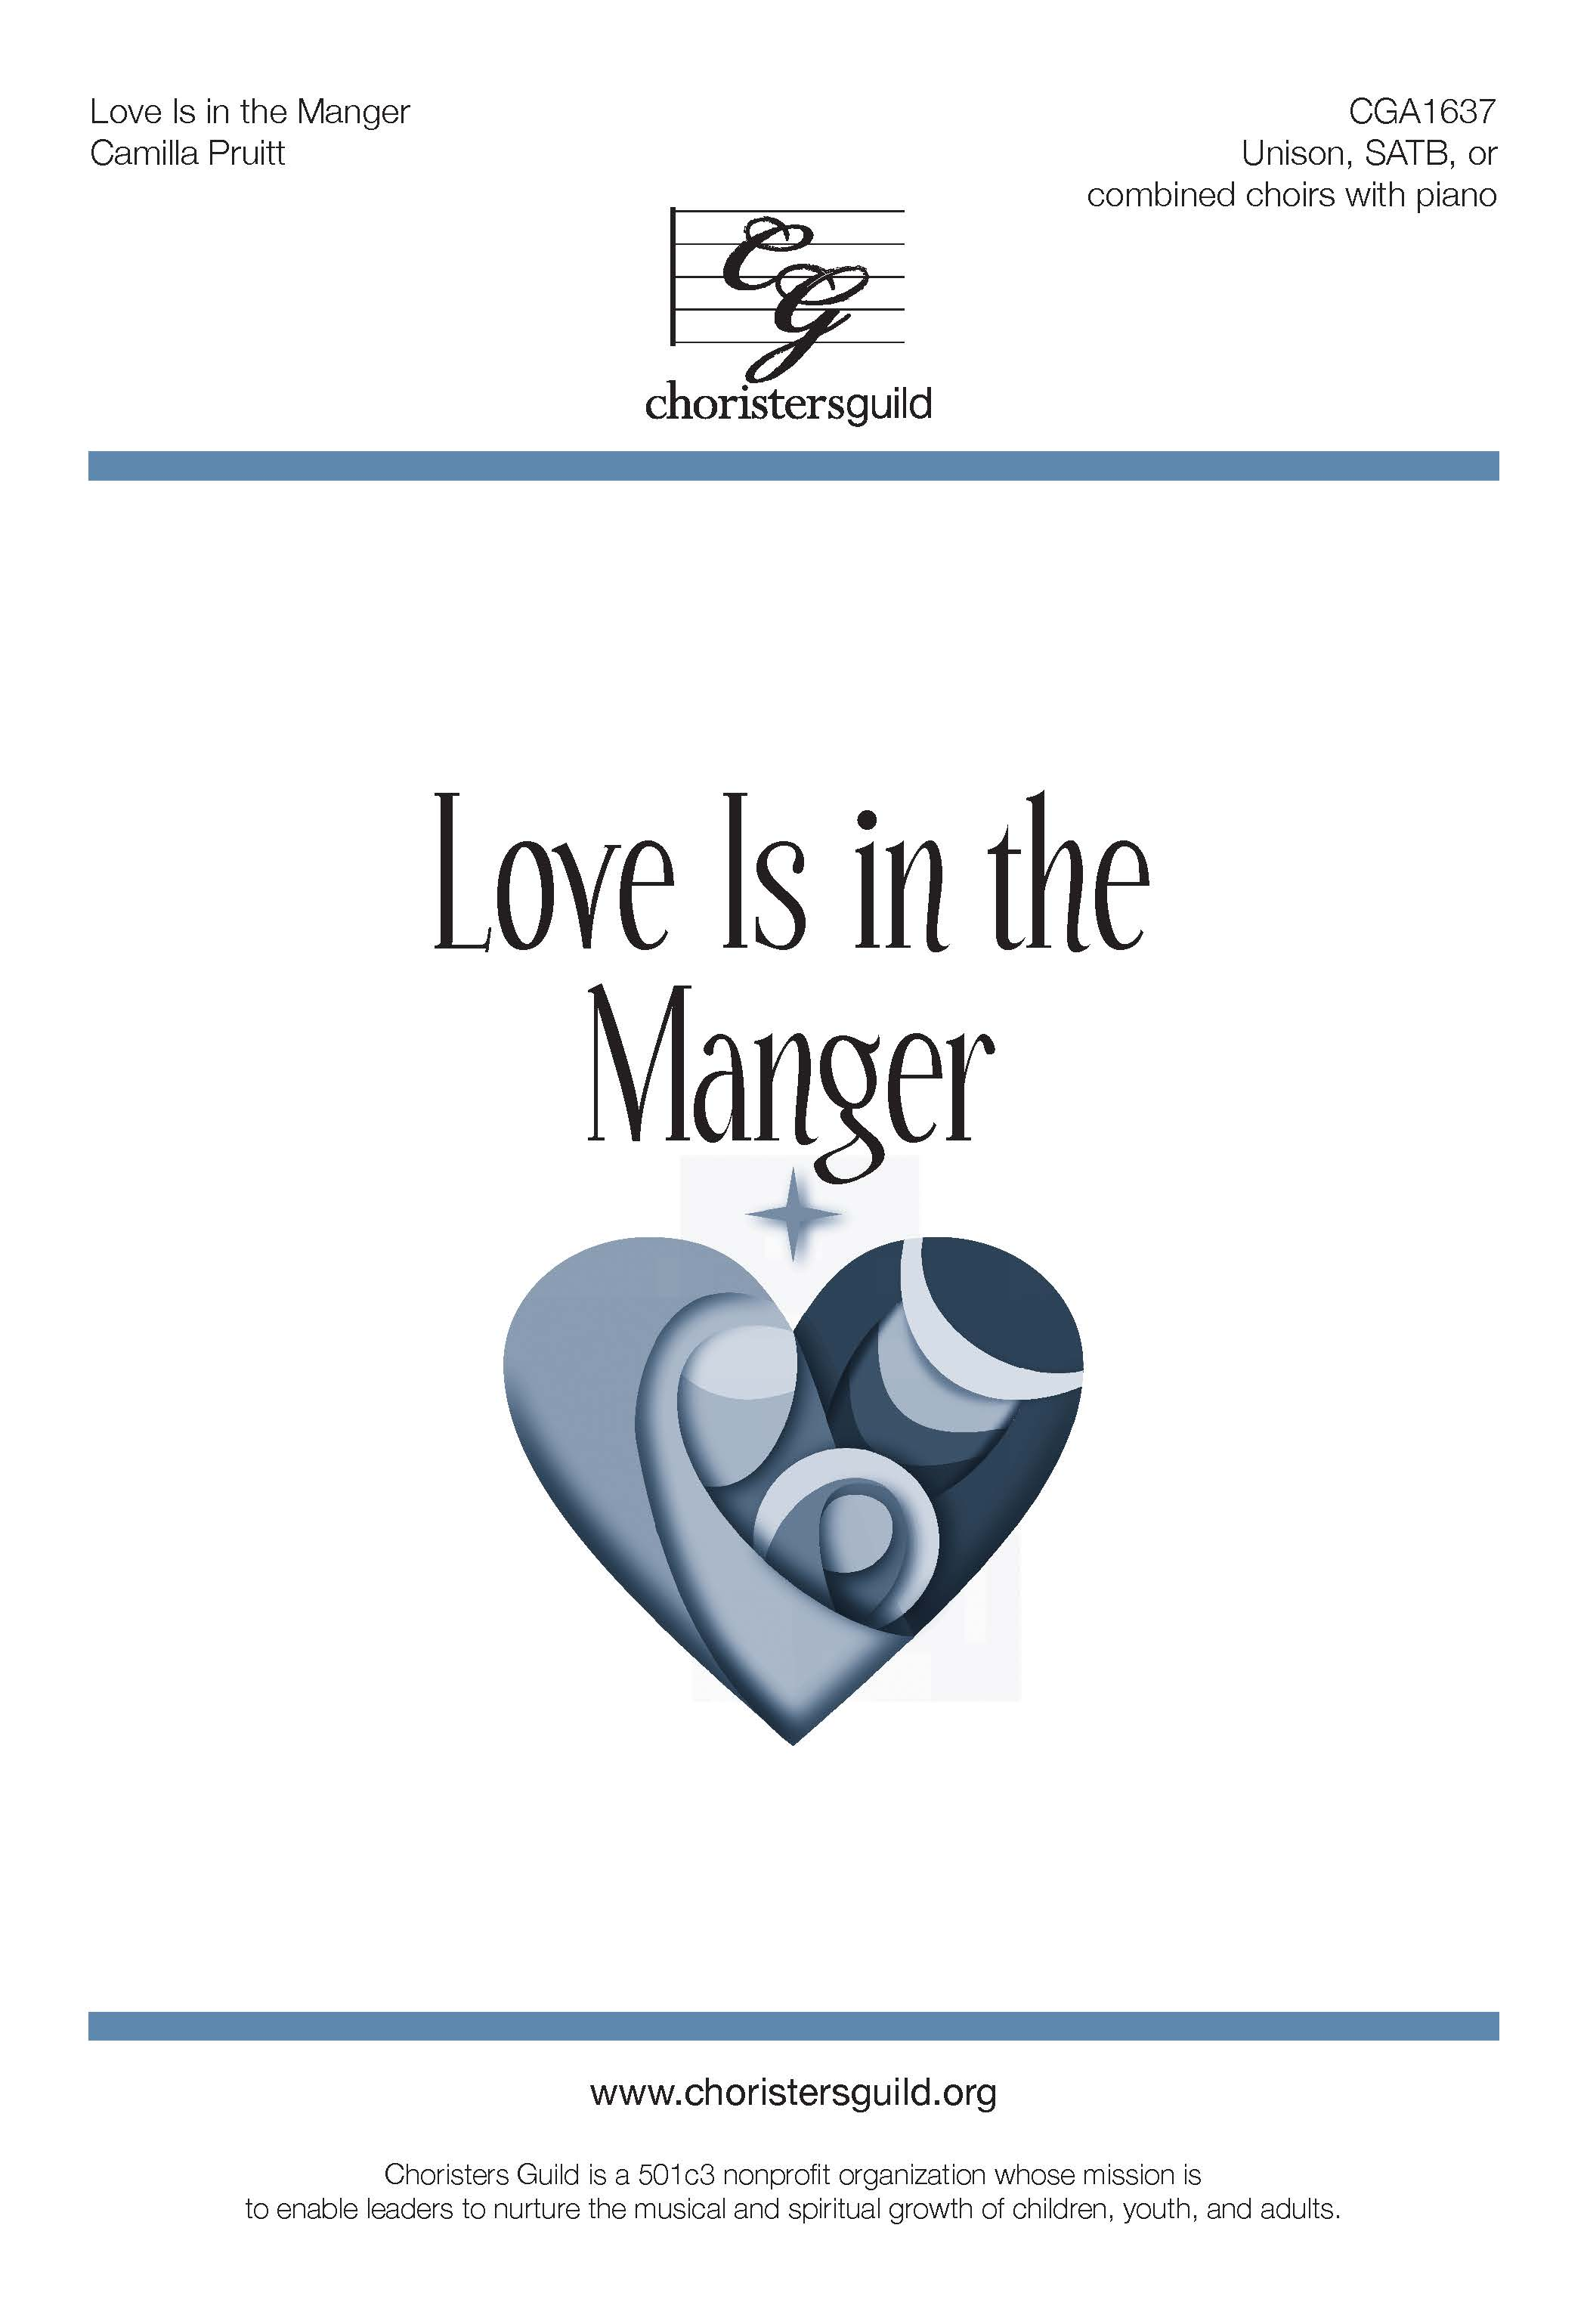 Love is in the Manger - SATB and Unison Combined Choirs